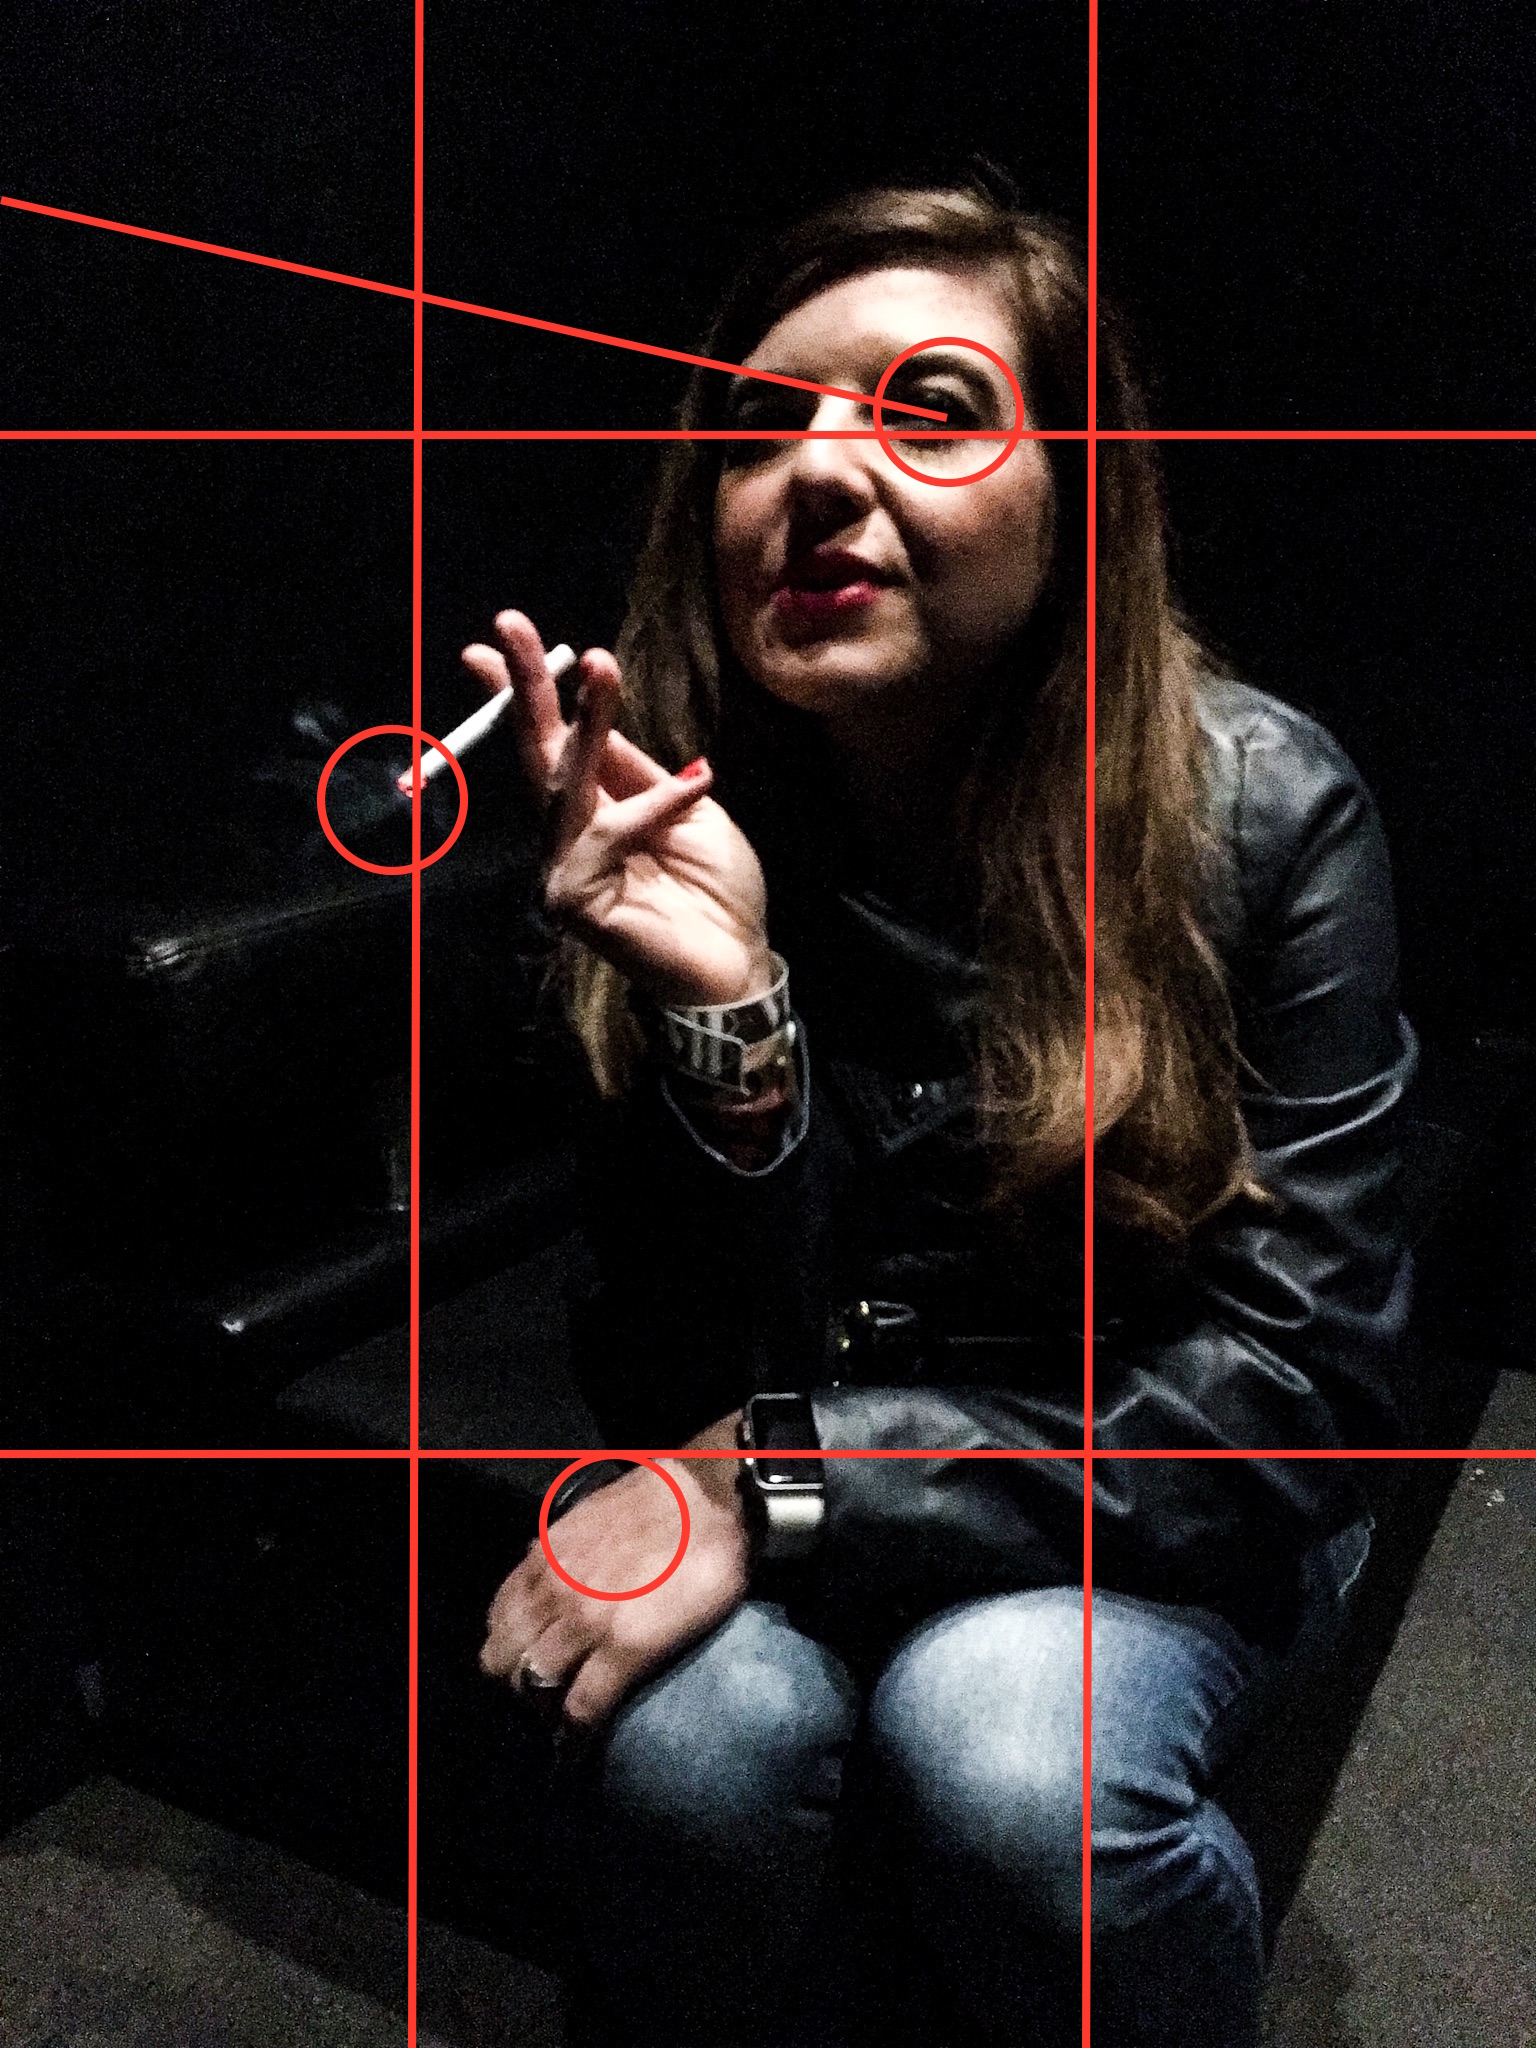 I created an overlay of lines and circles to highlight why I think this image was interesting. The eyes are close to the top right intersection in the rule of thirds. The cigarette falls on the left third of the image and the hand on the bottom third of the image. The eyeline is on an angle off camera looking to something, creating interest. The lighting contrast, the dark shadows and bright spots create interest.